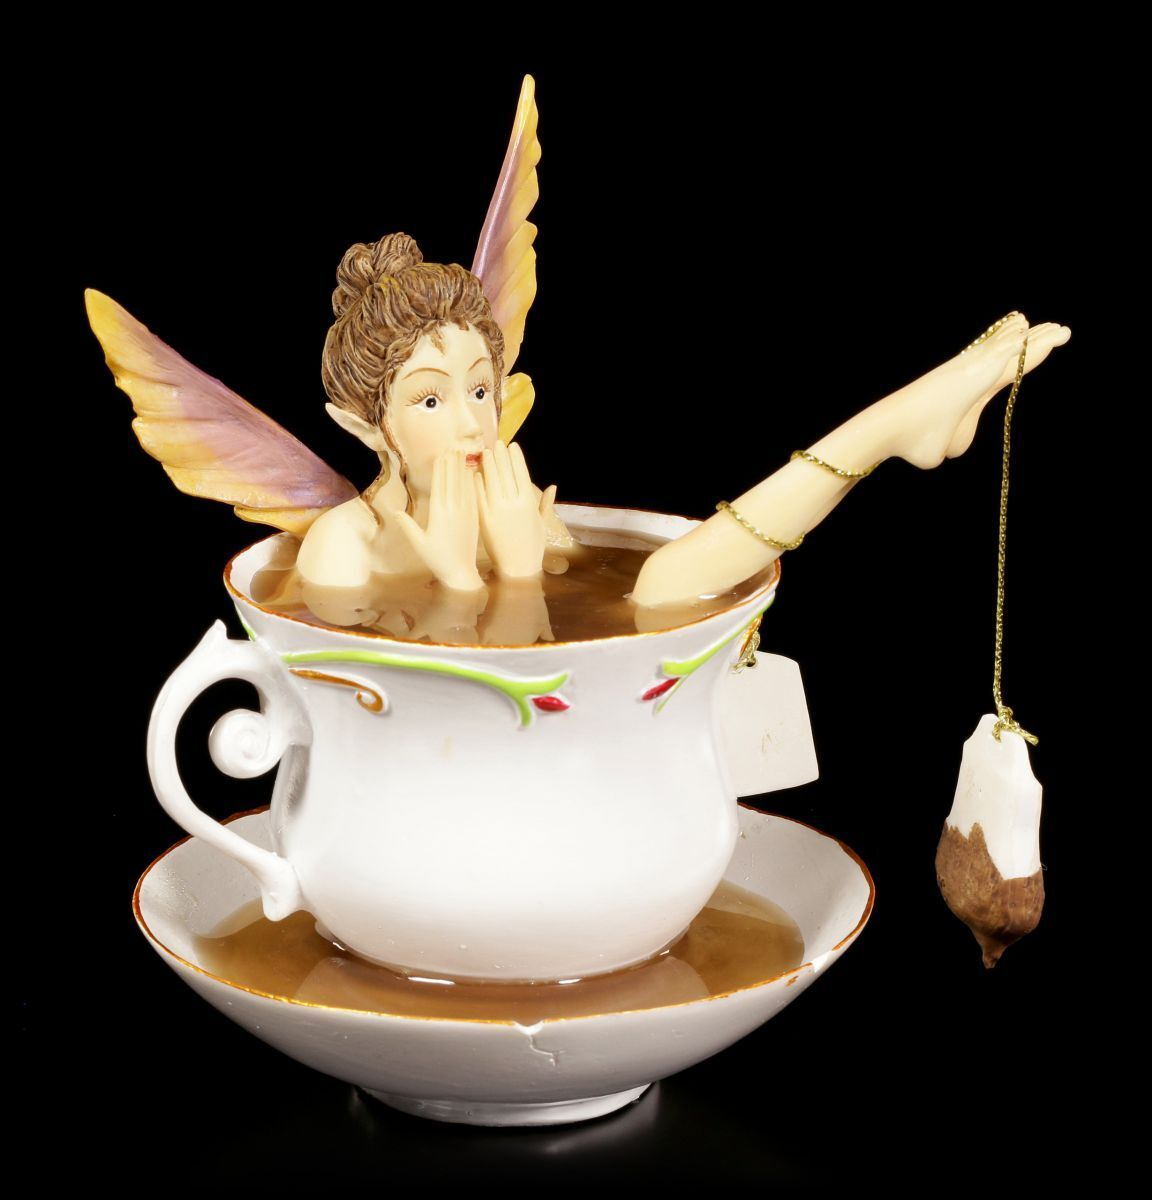 Elf in Cup Figurine - Tea Bath - Fairy Statue Rene Biertempfel Fantasy